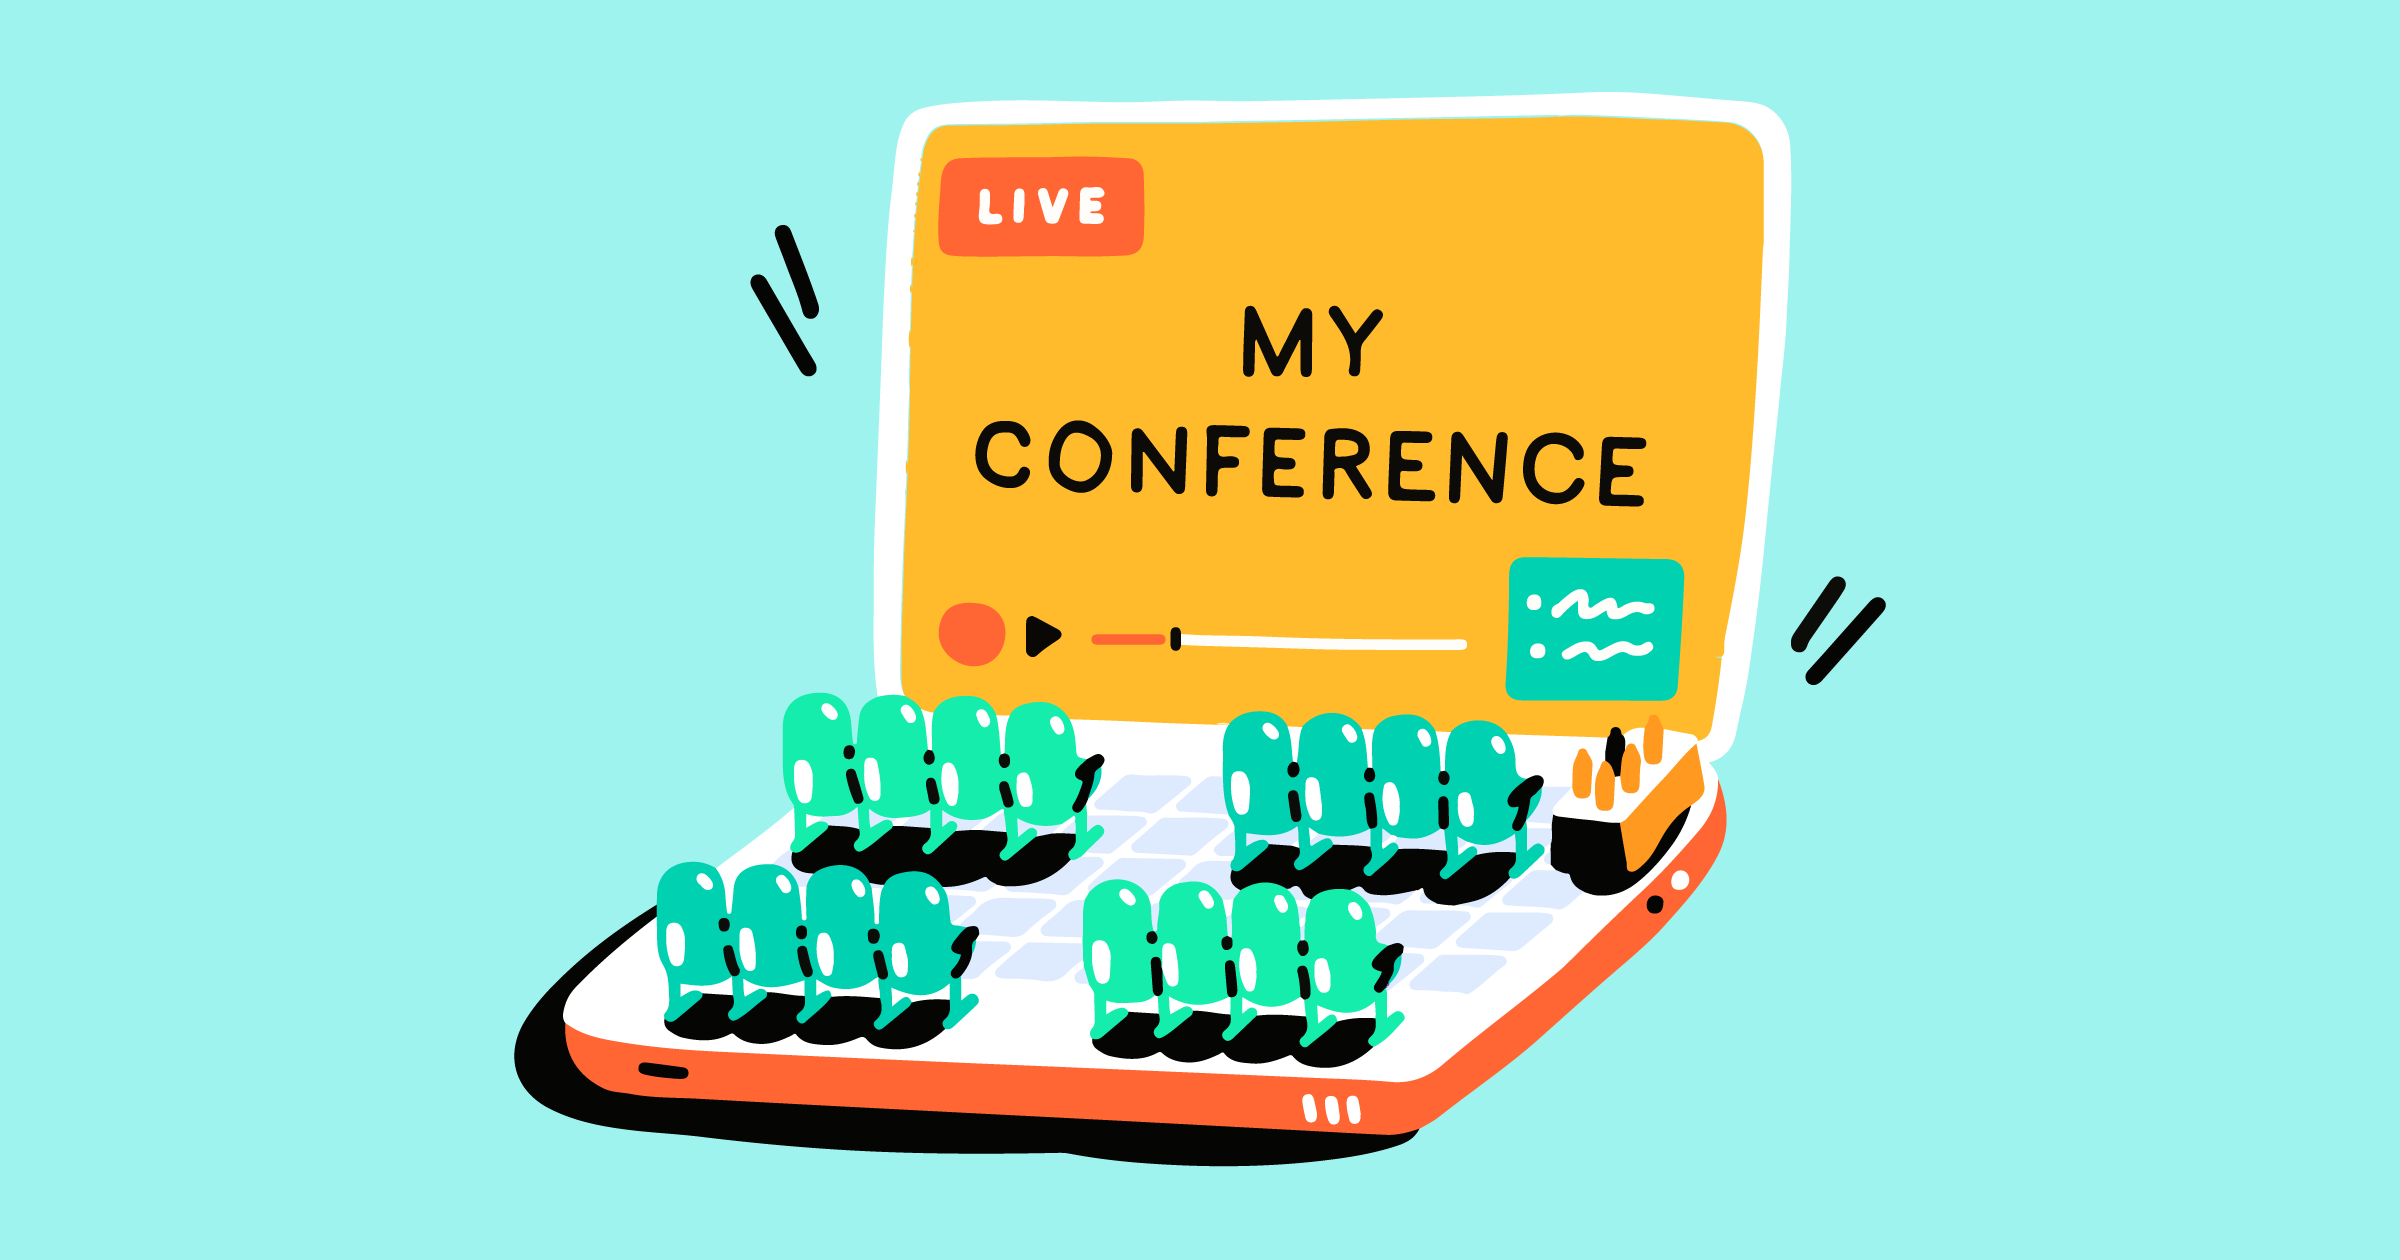 Conference live streaming